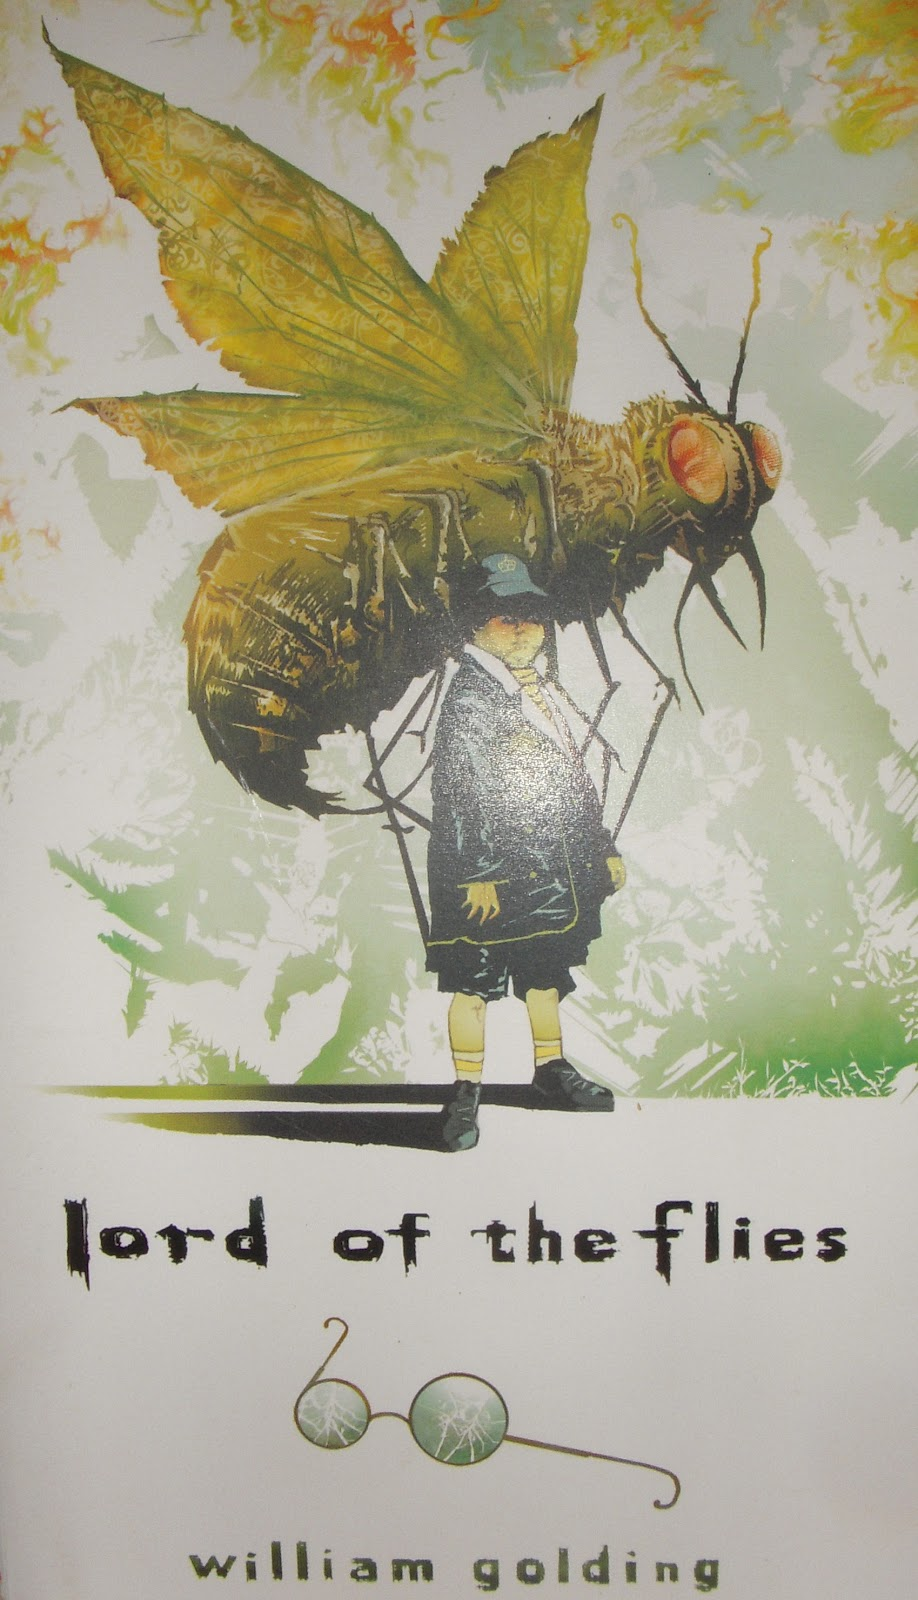 lord of the flies sociological concepts Lord of the flies: the nature of man william golding's lord of the flies is a gritty allegory of adolescence, innocence, and the unspoken side of human nature countless social issues are portrayed, however one of the most reoccurring is the nature of man.